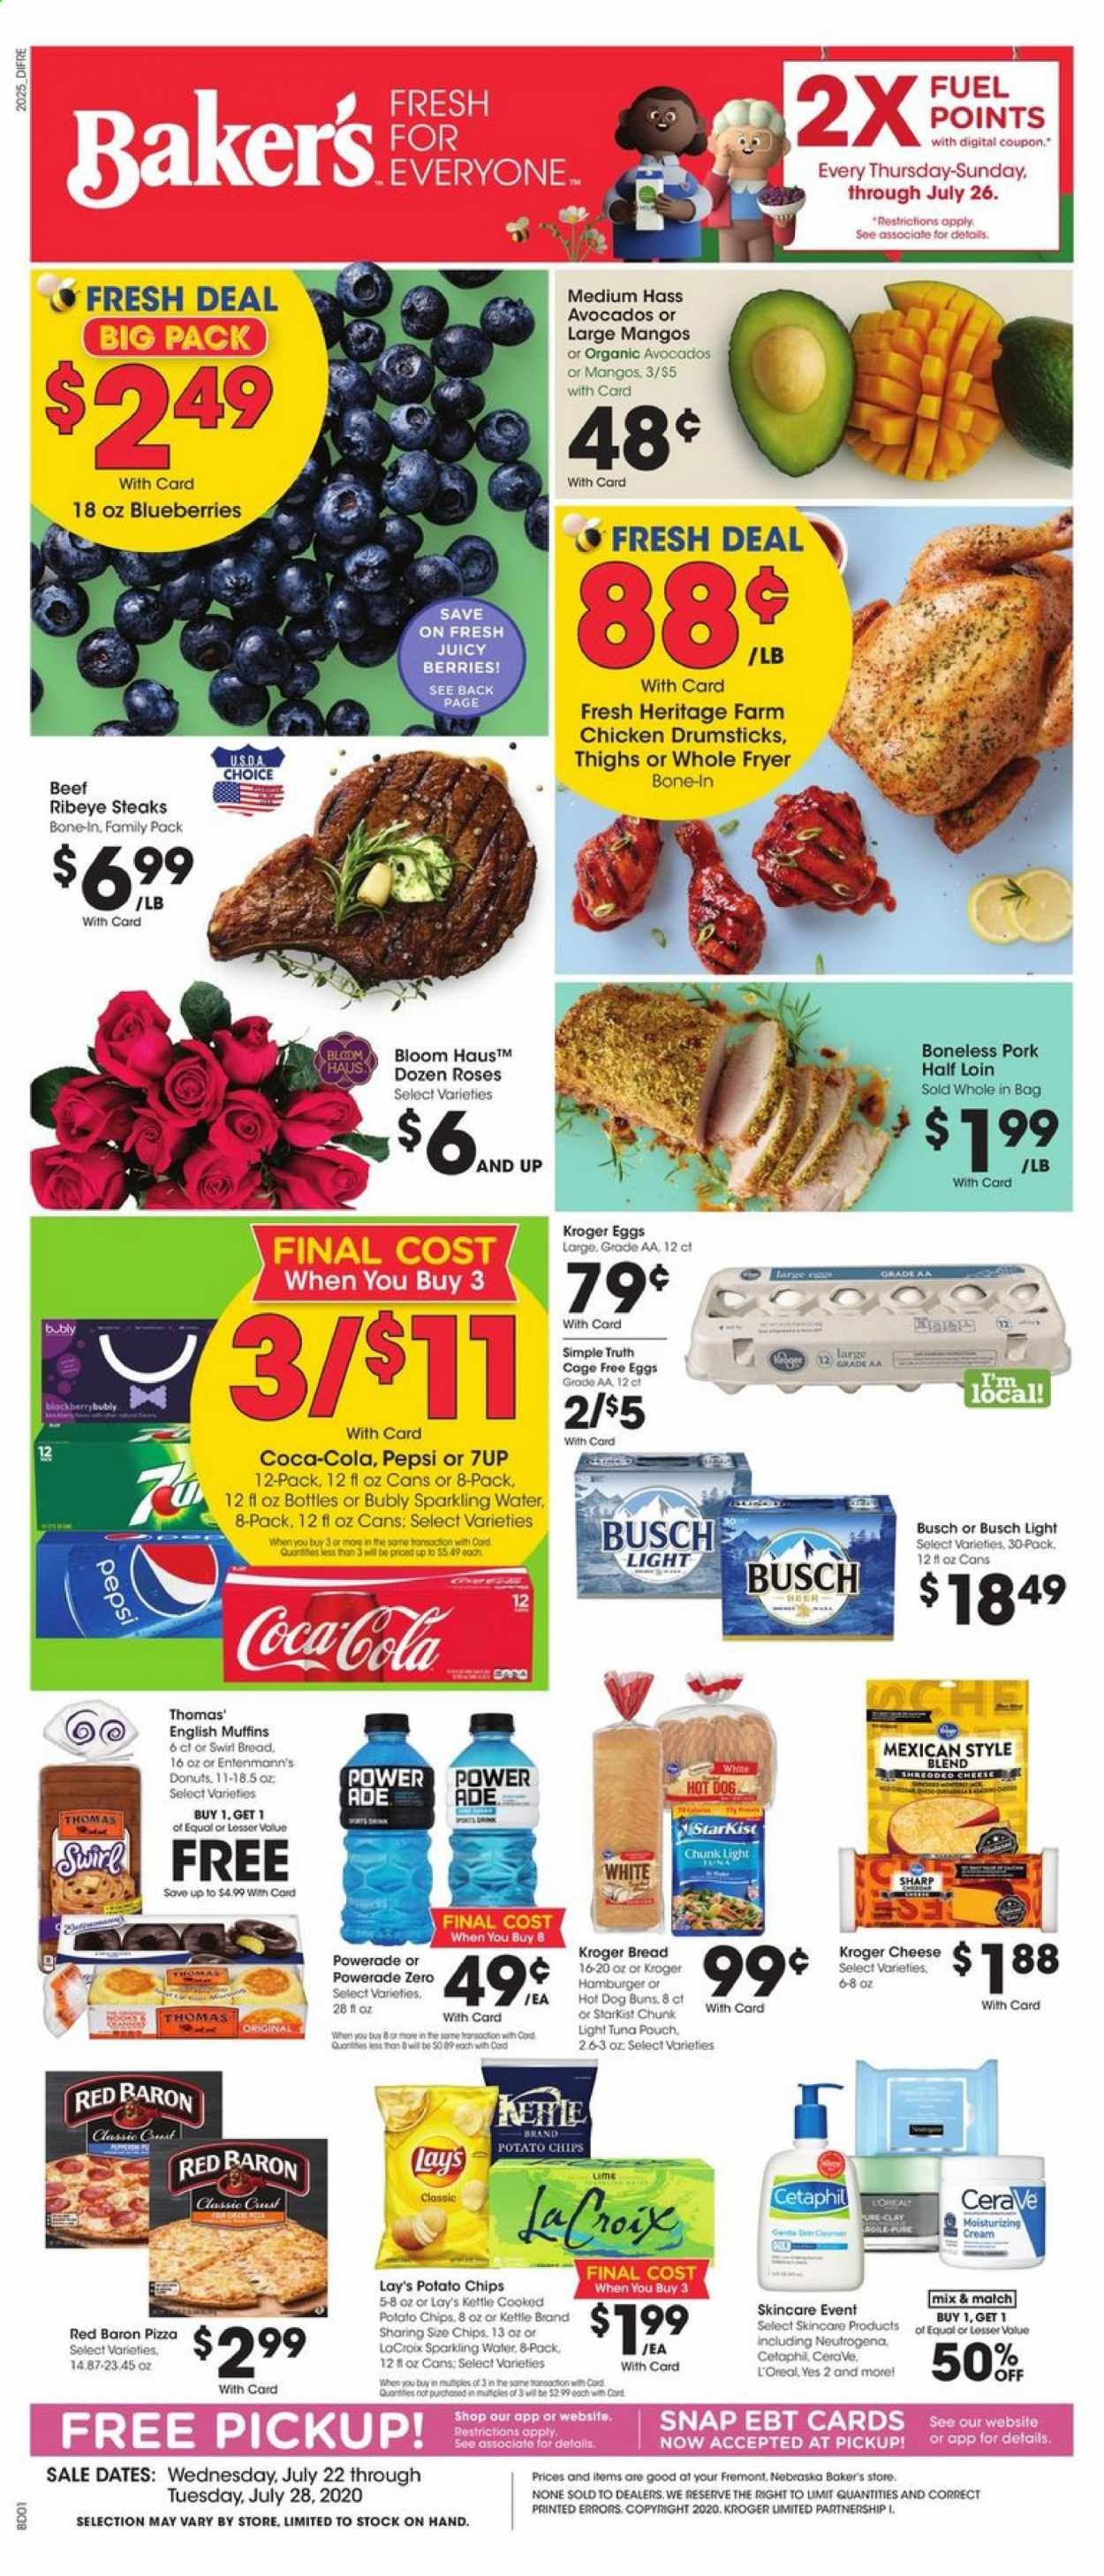 Baker's Flyer - 07.22.2020 - 07.28.2020 - Sales products - avocado, beef meat, beer, blueberries, bread, busch, busch light, cerave, coca-cola, dates, eggs, english muffins, fryer, fuel, l'oréal, mango, moisturizing, muffins, neutrogena, sharp, tuna, hot dog, pizza, pork meat, potato chips, powerade, chicken, chicken drumsticks, pepsi, organic, chips, cheese, burger; burgers, sparkling water, donuts, hamburger, roses, light tuna, lay's, cream, family pack, donut, kettle. Page 1.